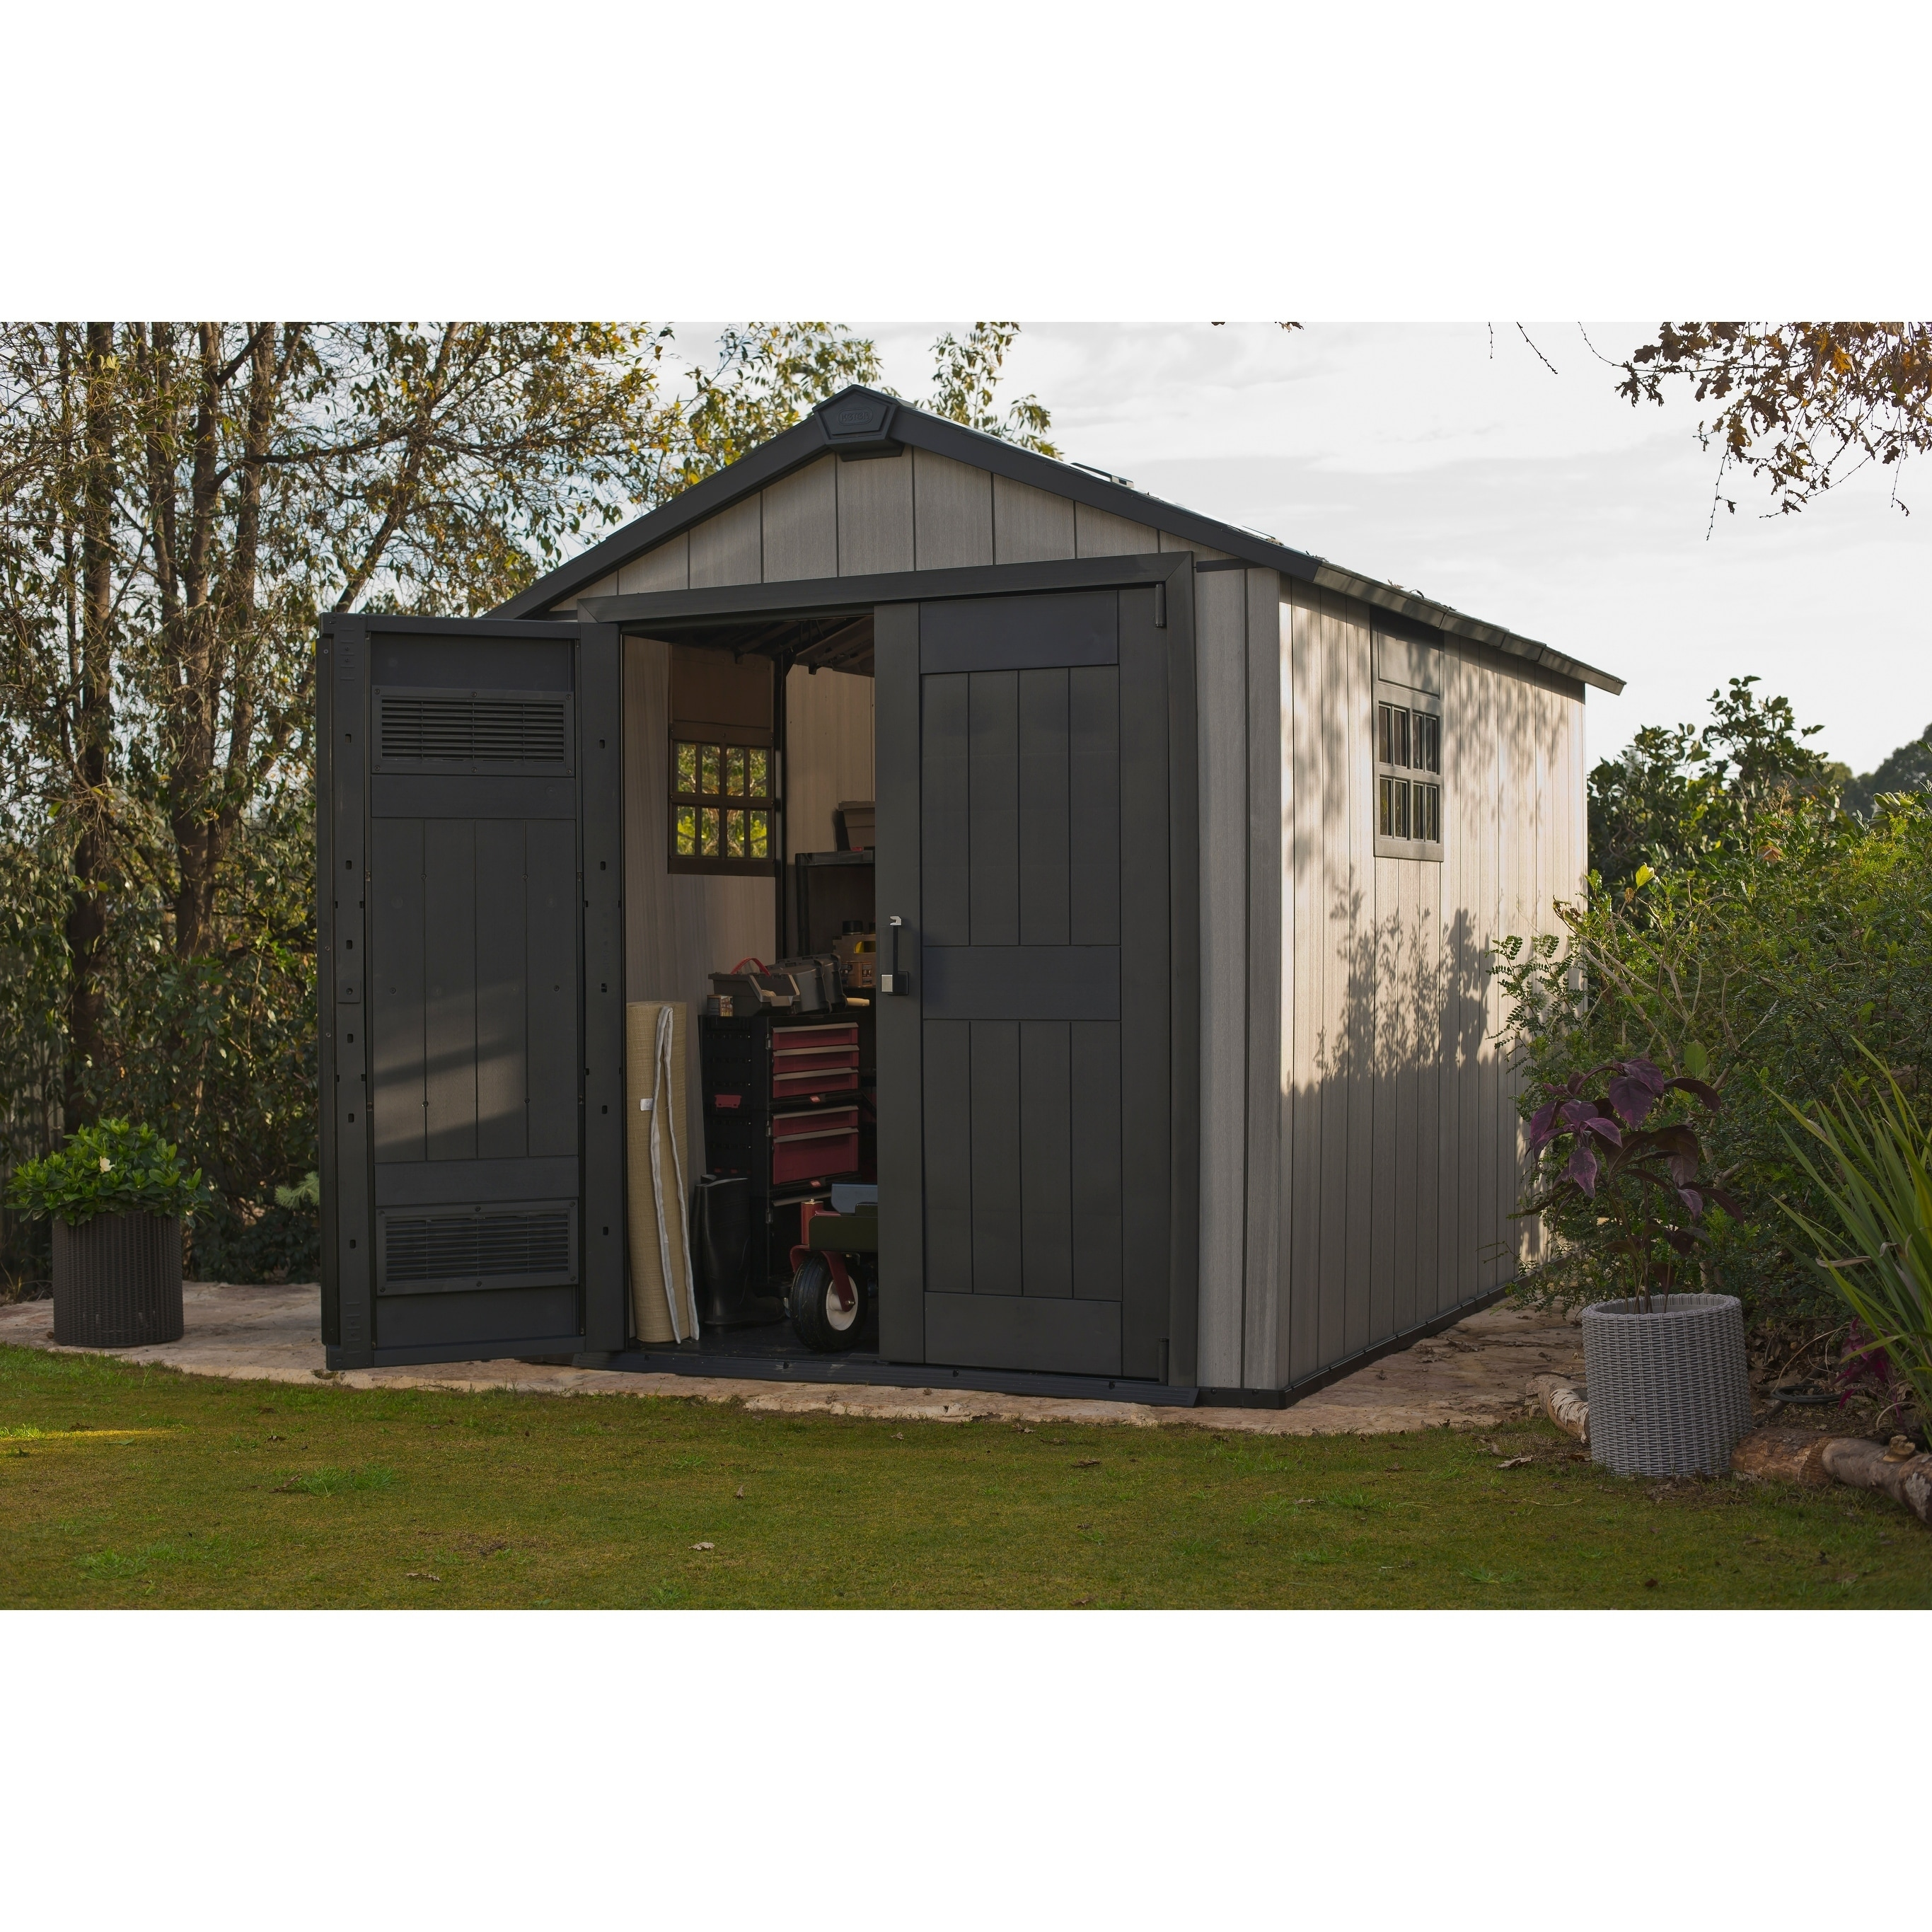 Merveilleux Shop Keter Oakland 7511 Plastic Resin Outdoor Storage Shed   Free Shipping  Today   Overstock.com   18236090